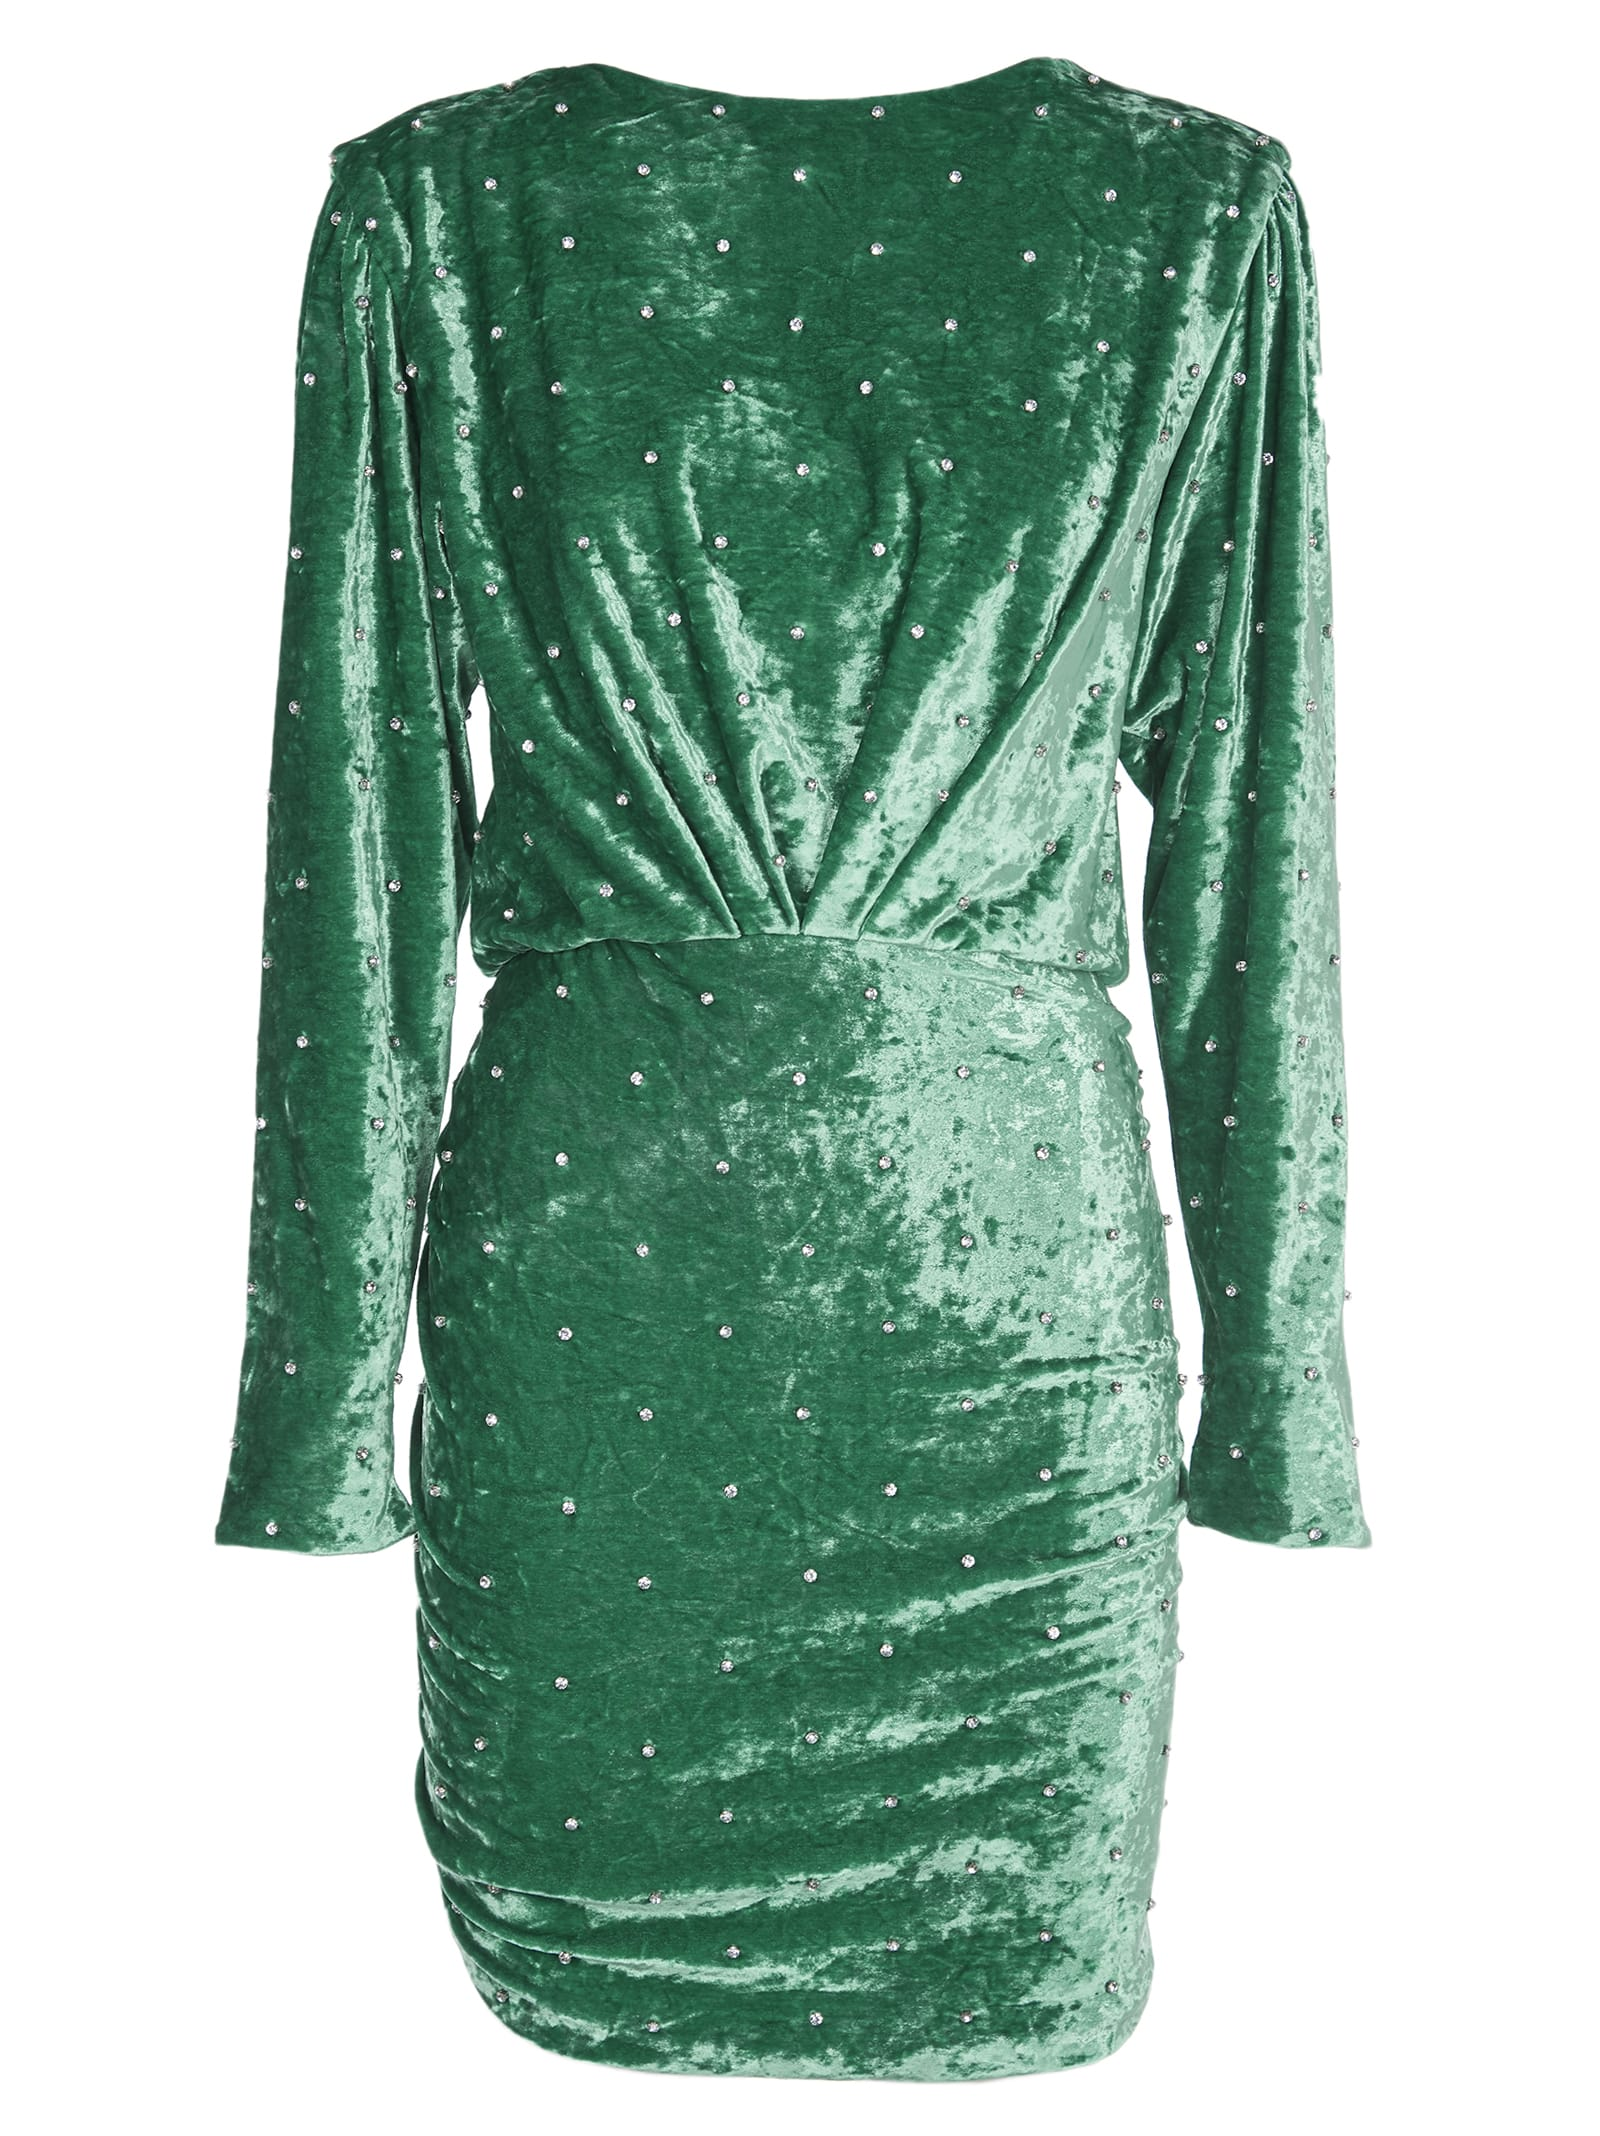 The Attico Stud Detail Green Dress